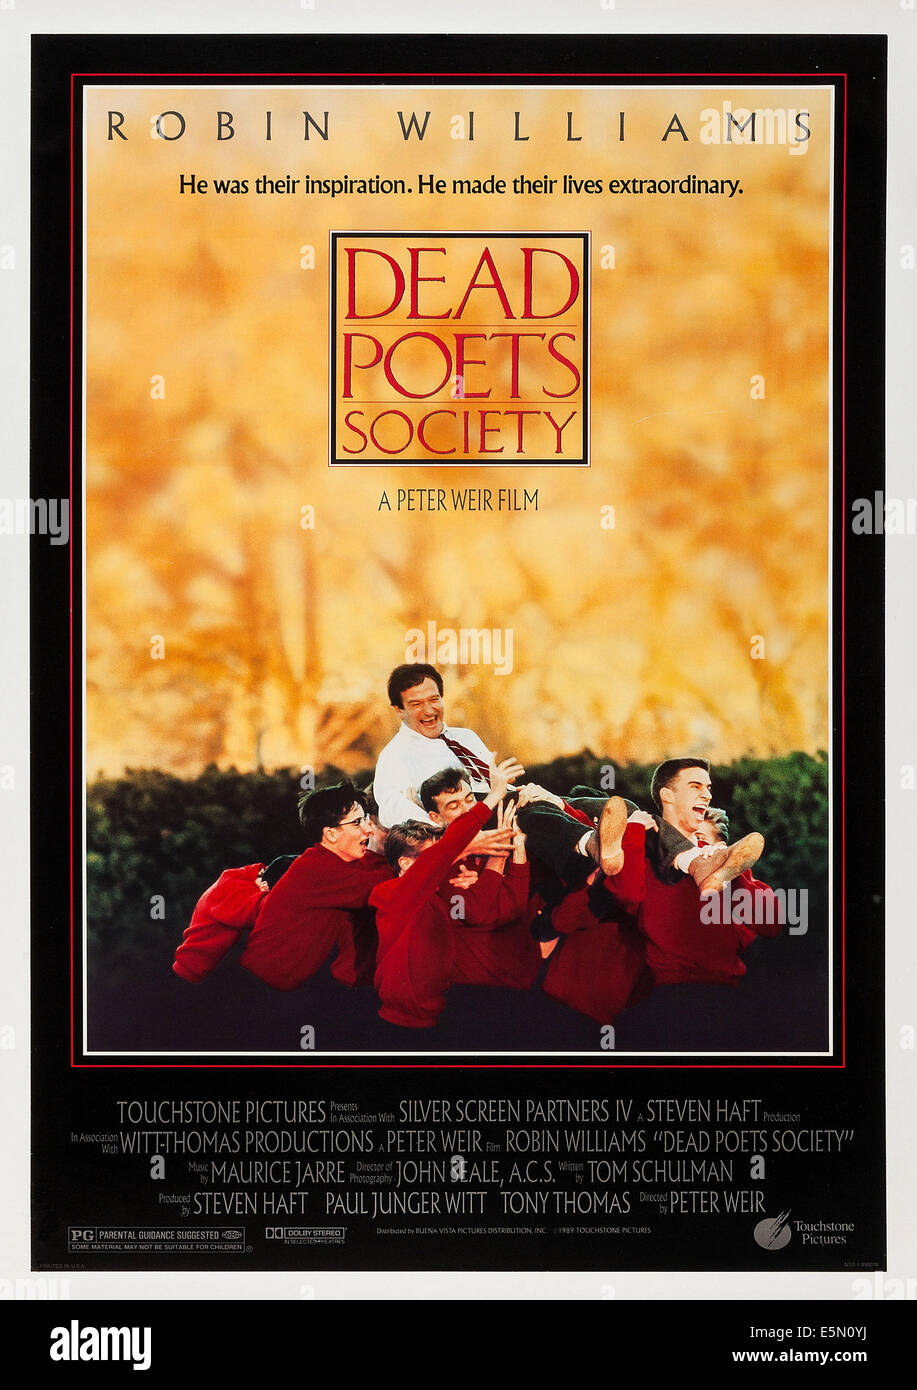 DEAD POETS SOCIETY, de nous poster art, haut : Robin Williams, 1989, ©Buena Vista Pictures/avec la permission Photo Stock